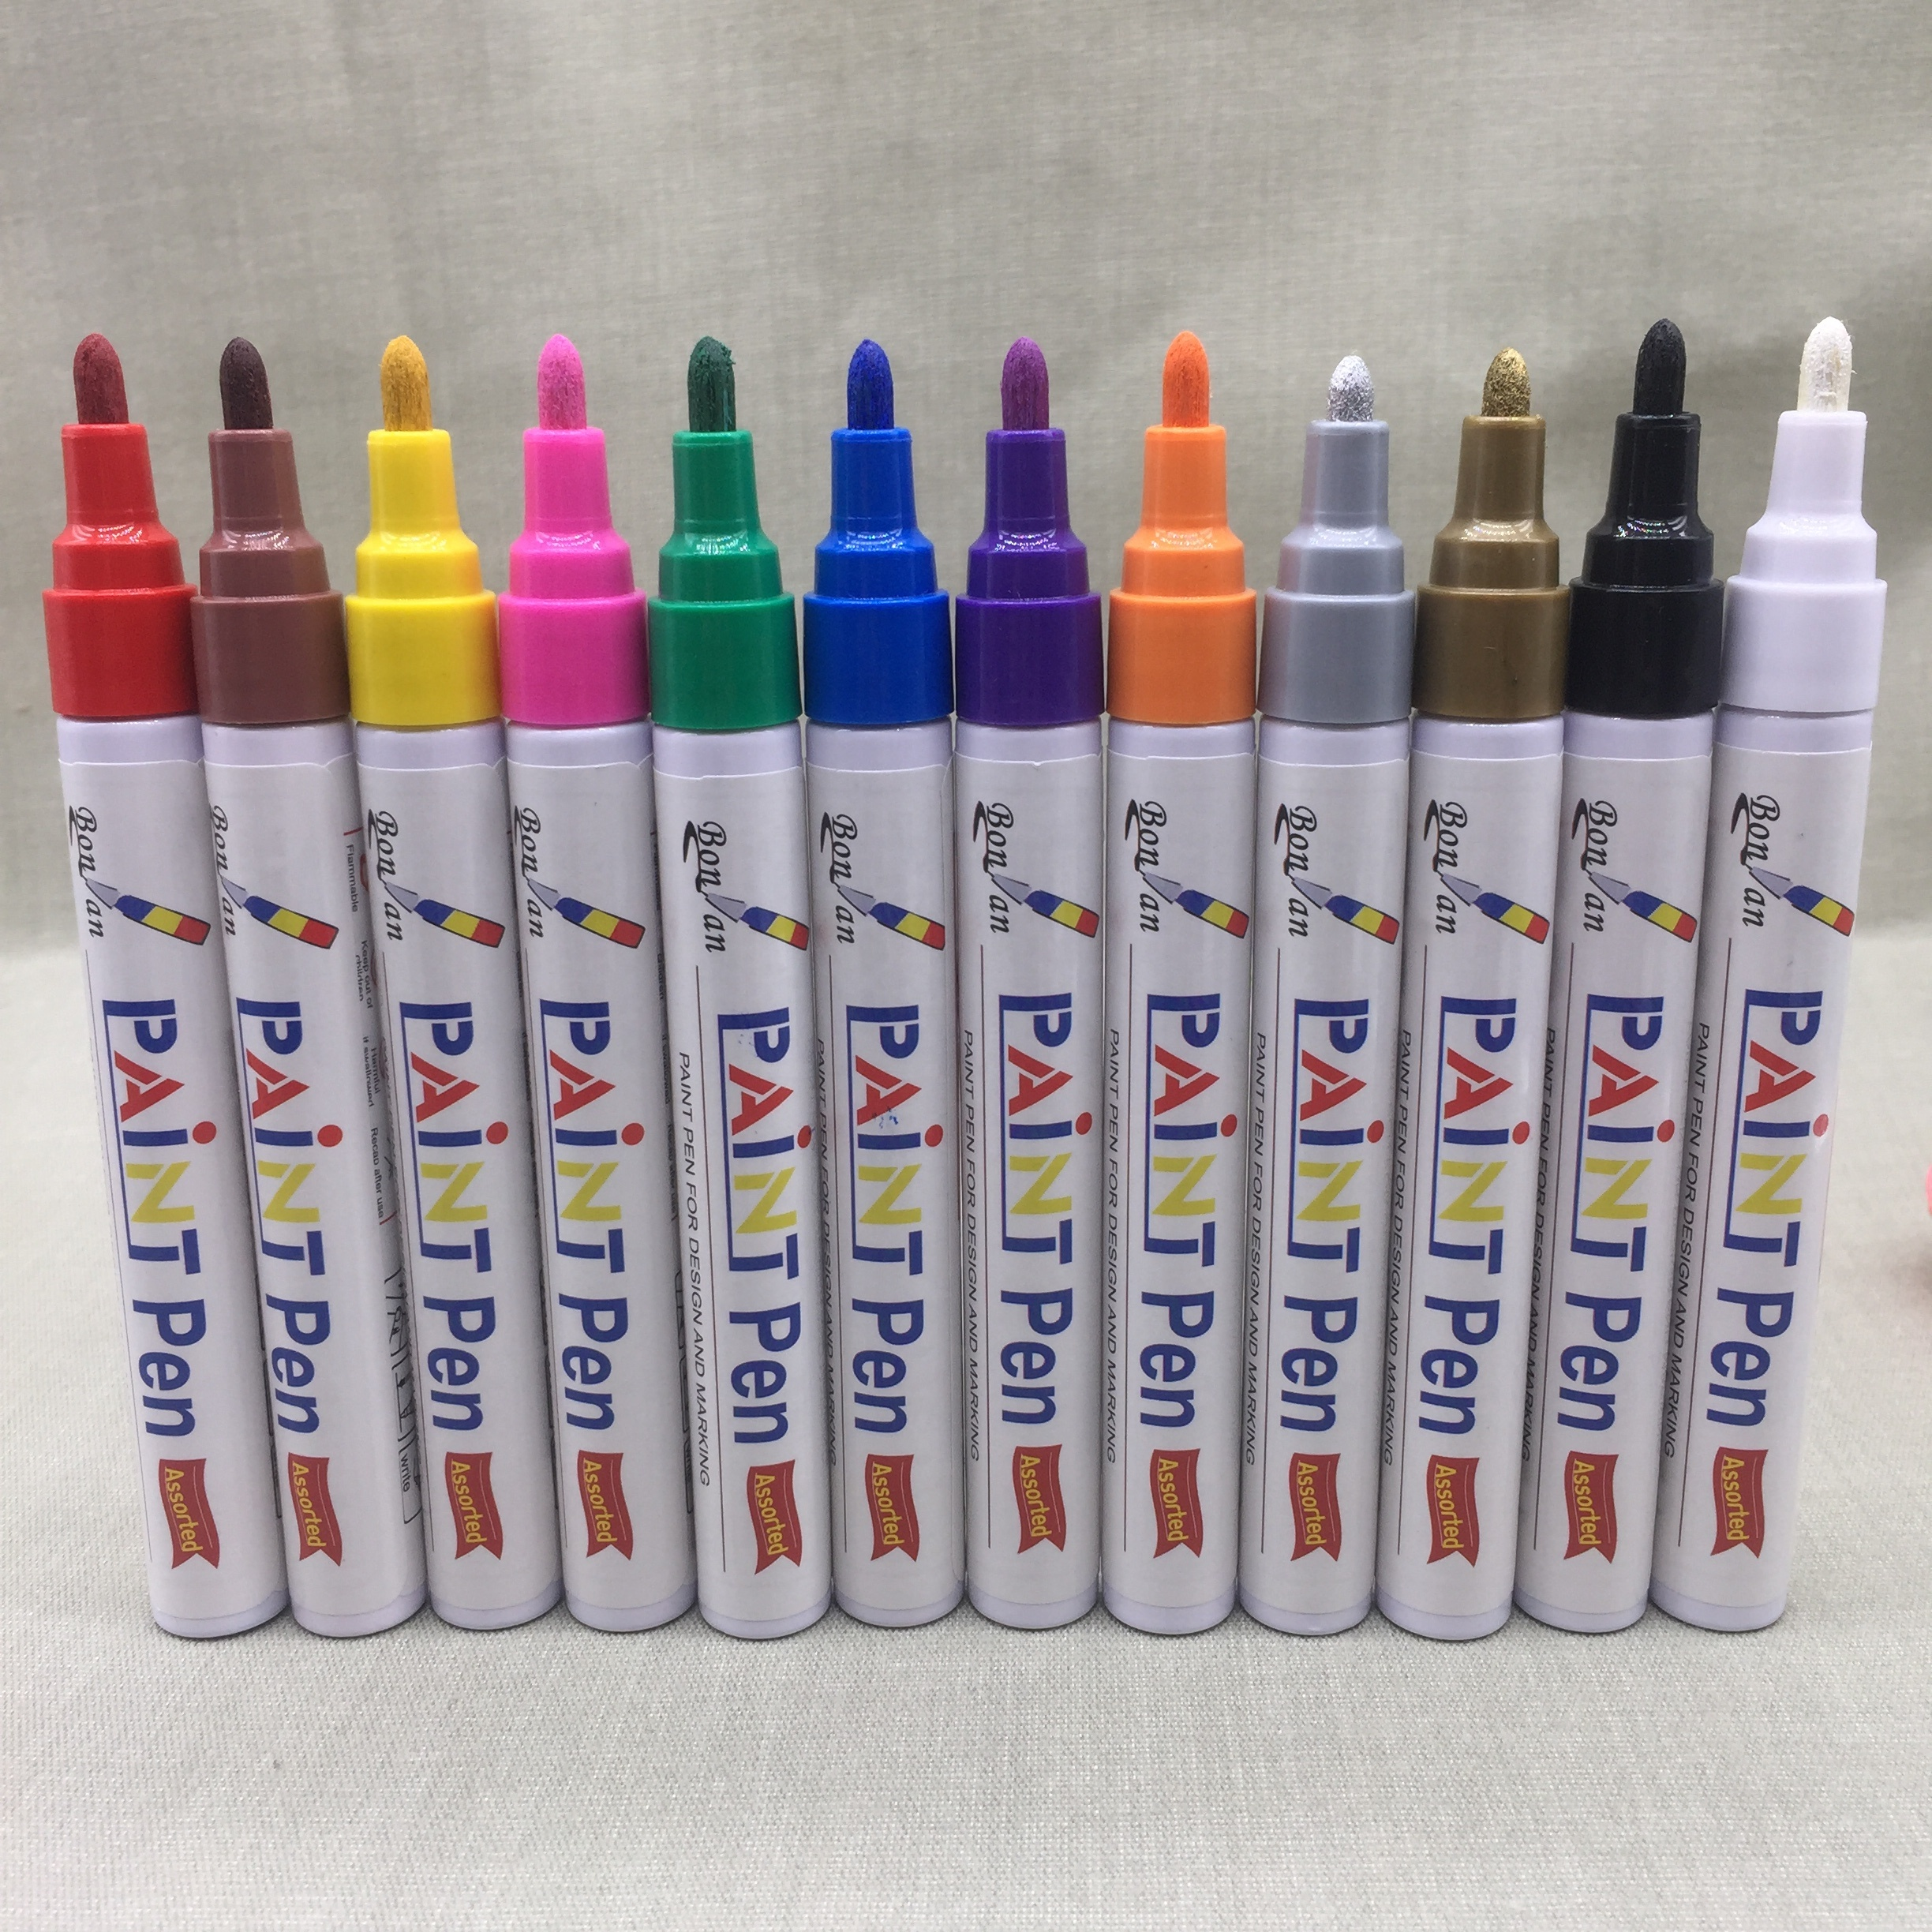 High Quality permanent paint marker pen set with logo